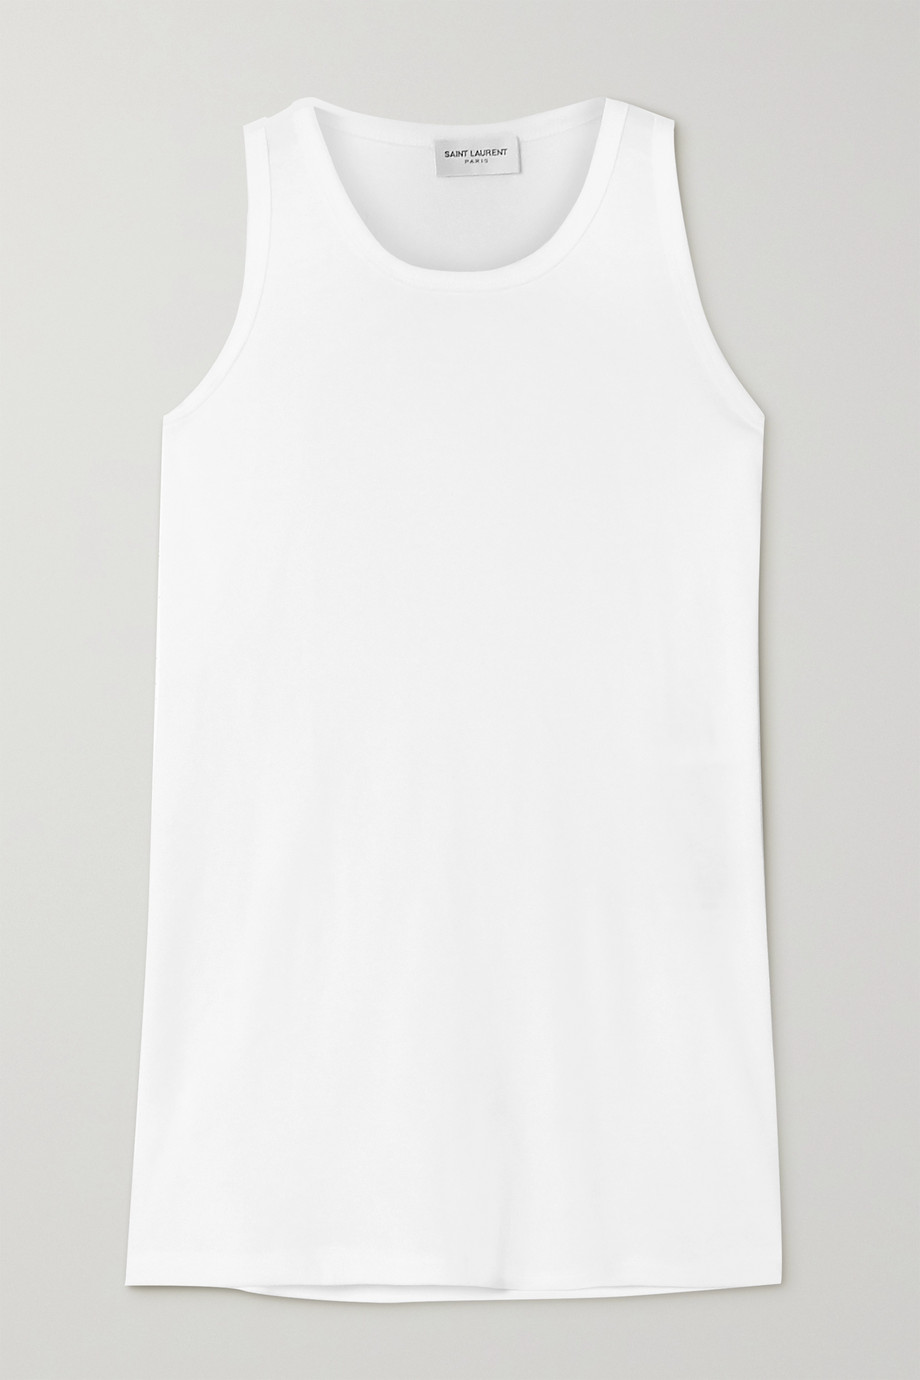 SAINT LAURENT Cotton-jersey tank